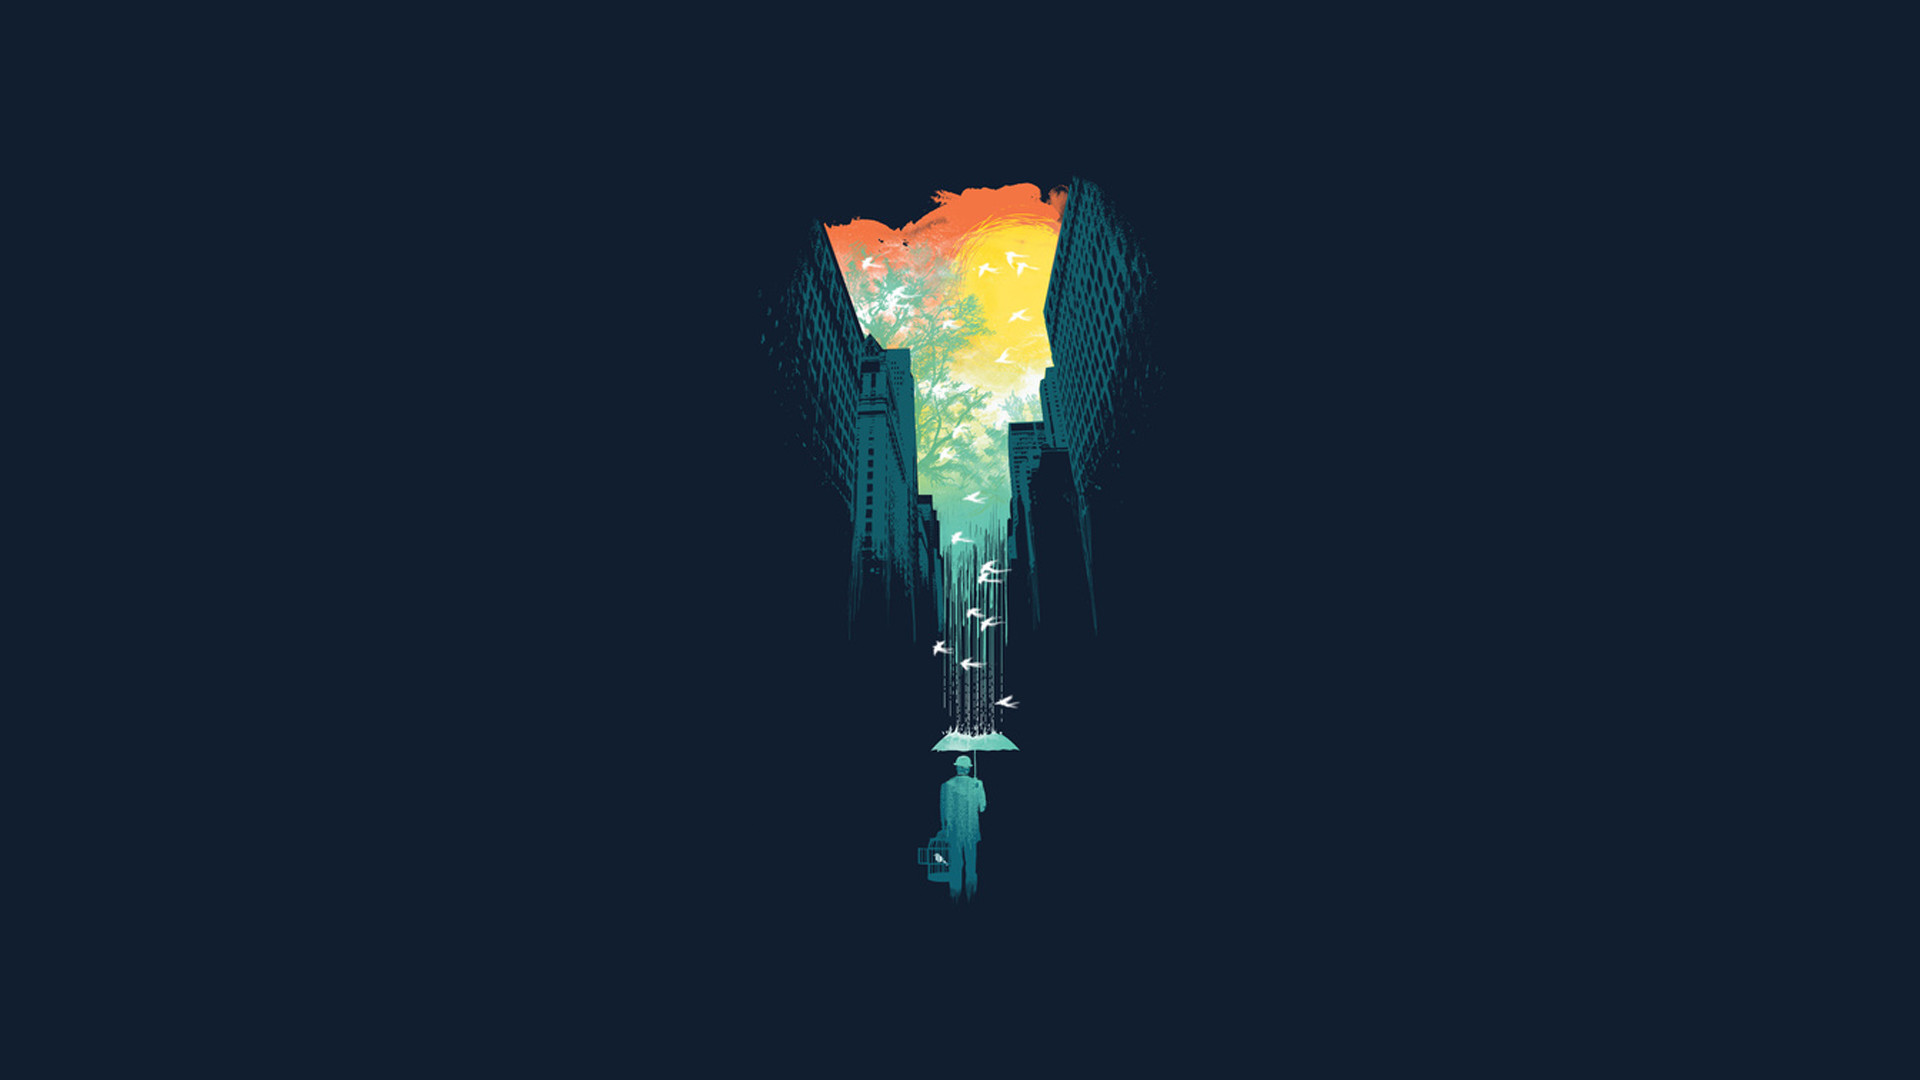 Cool Simple Wallpaper 66 images